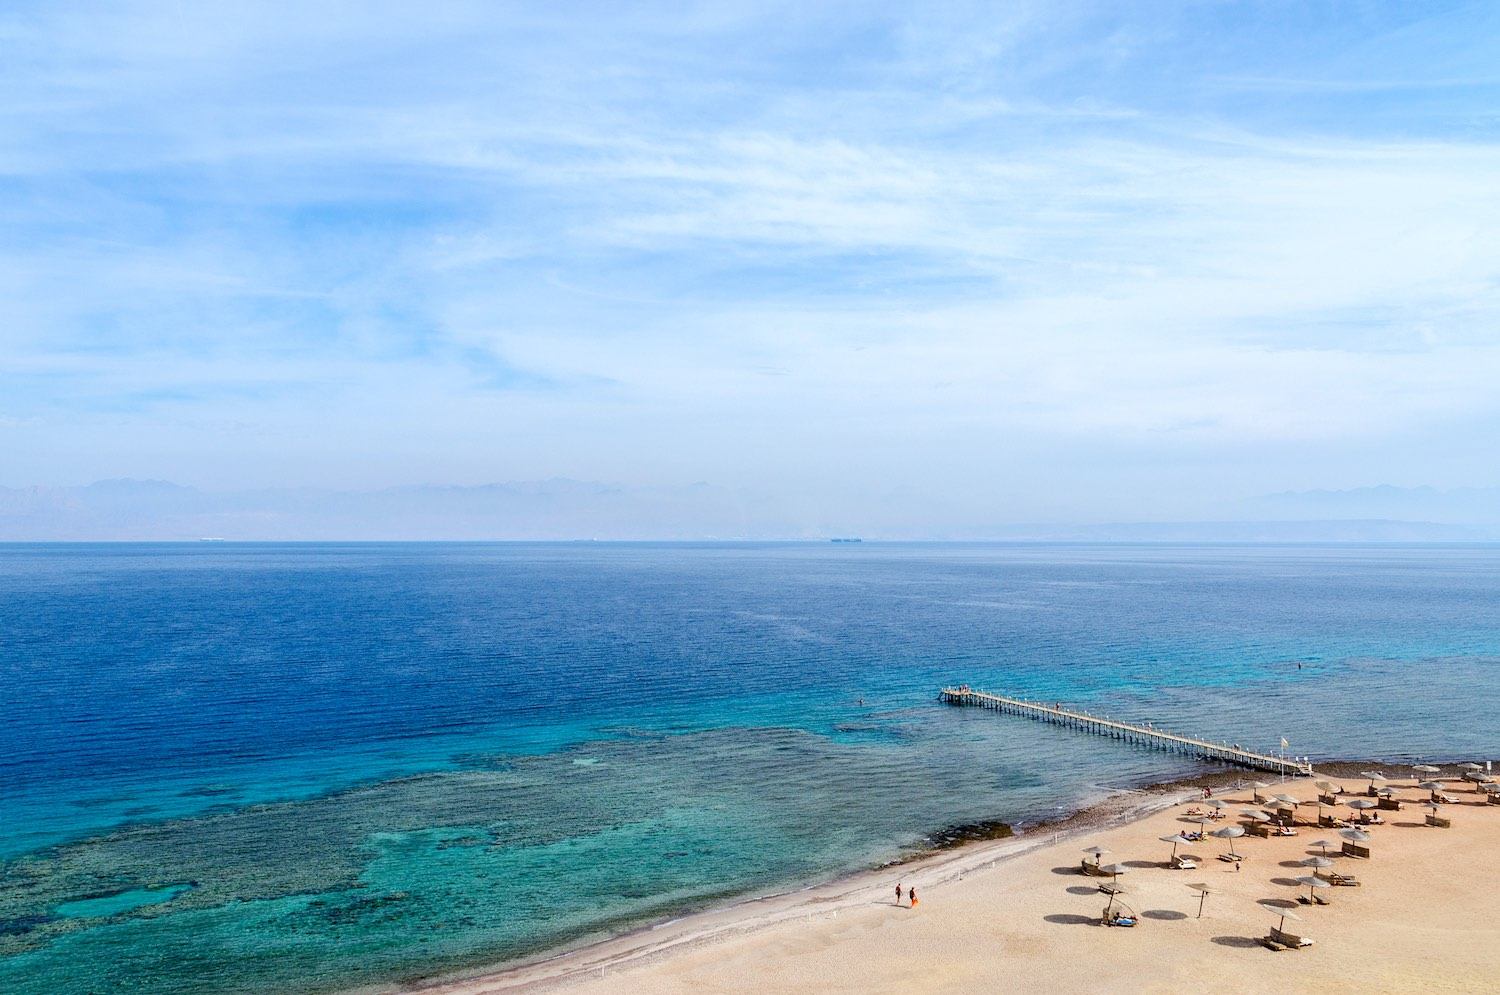 Where is Hot in January - Aqaba